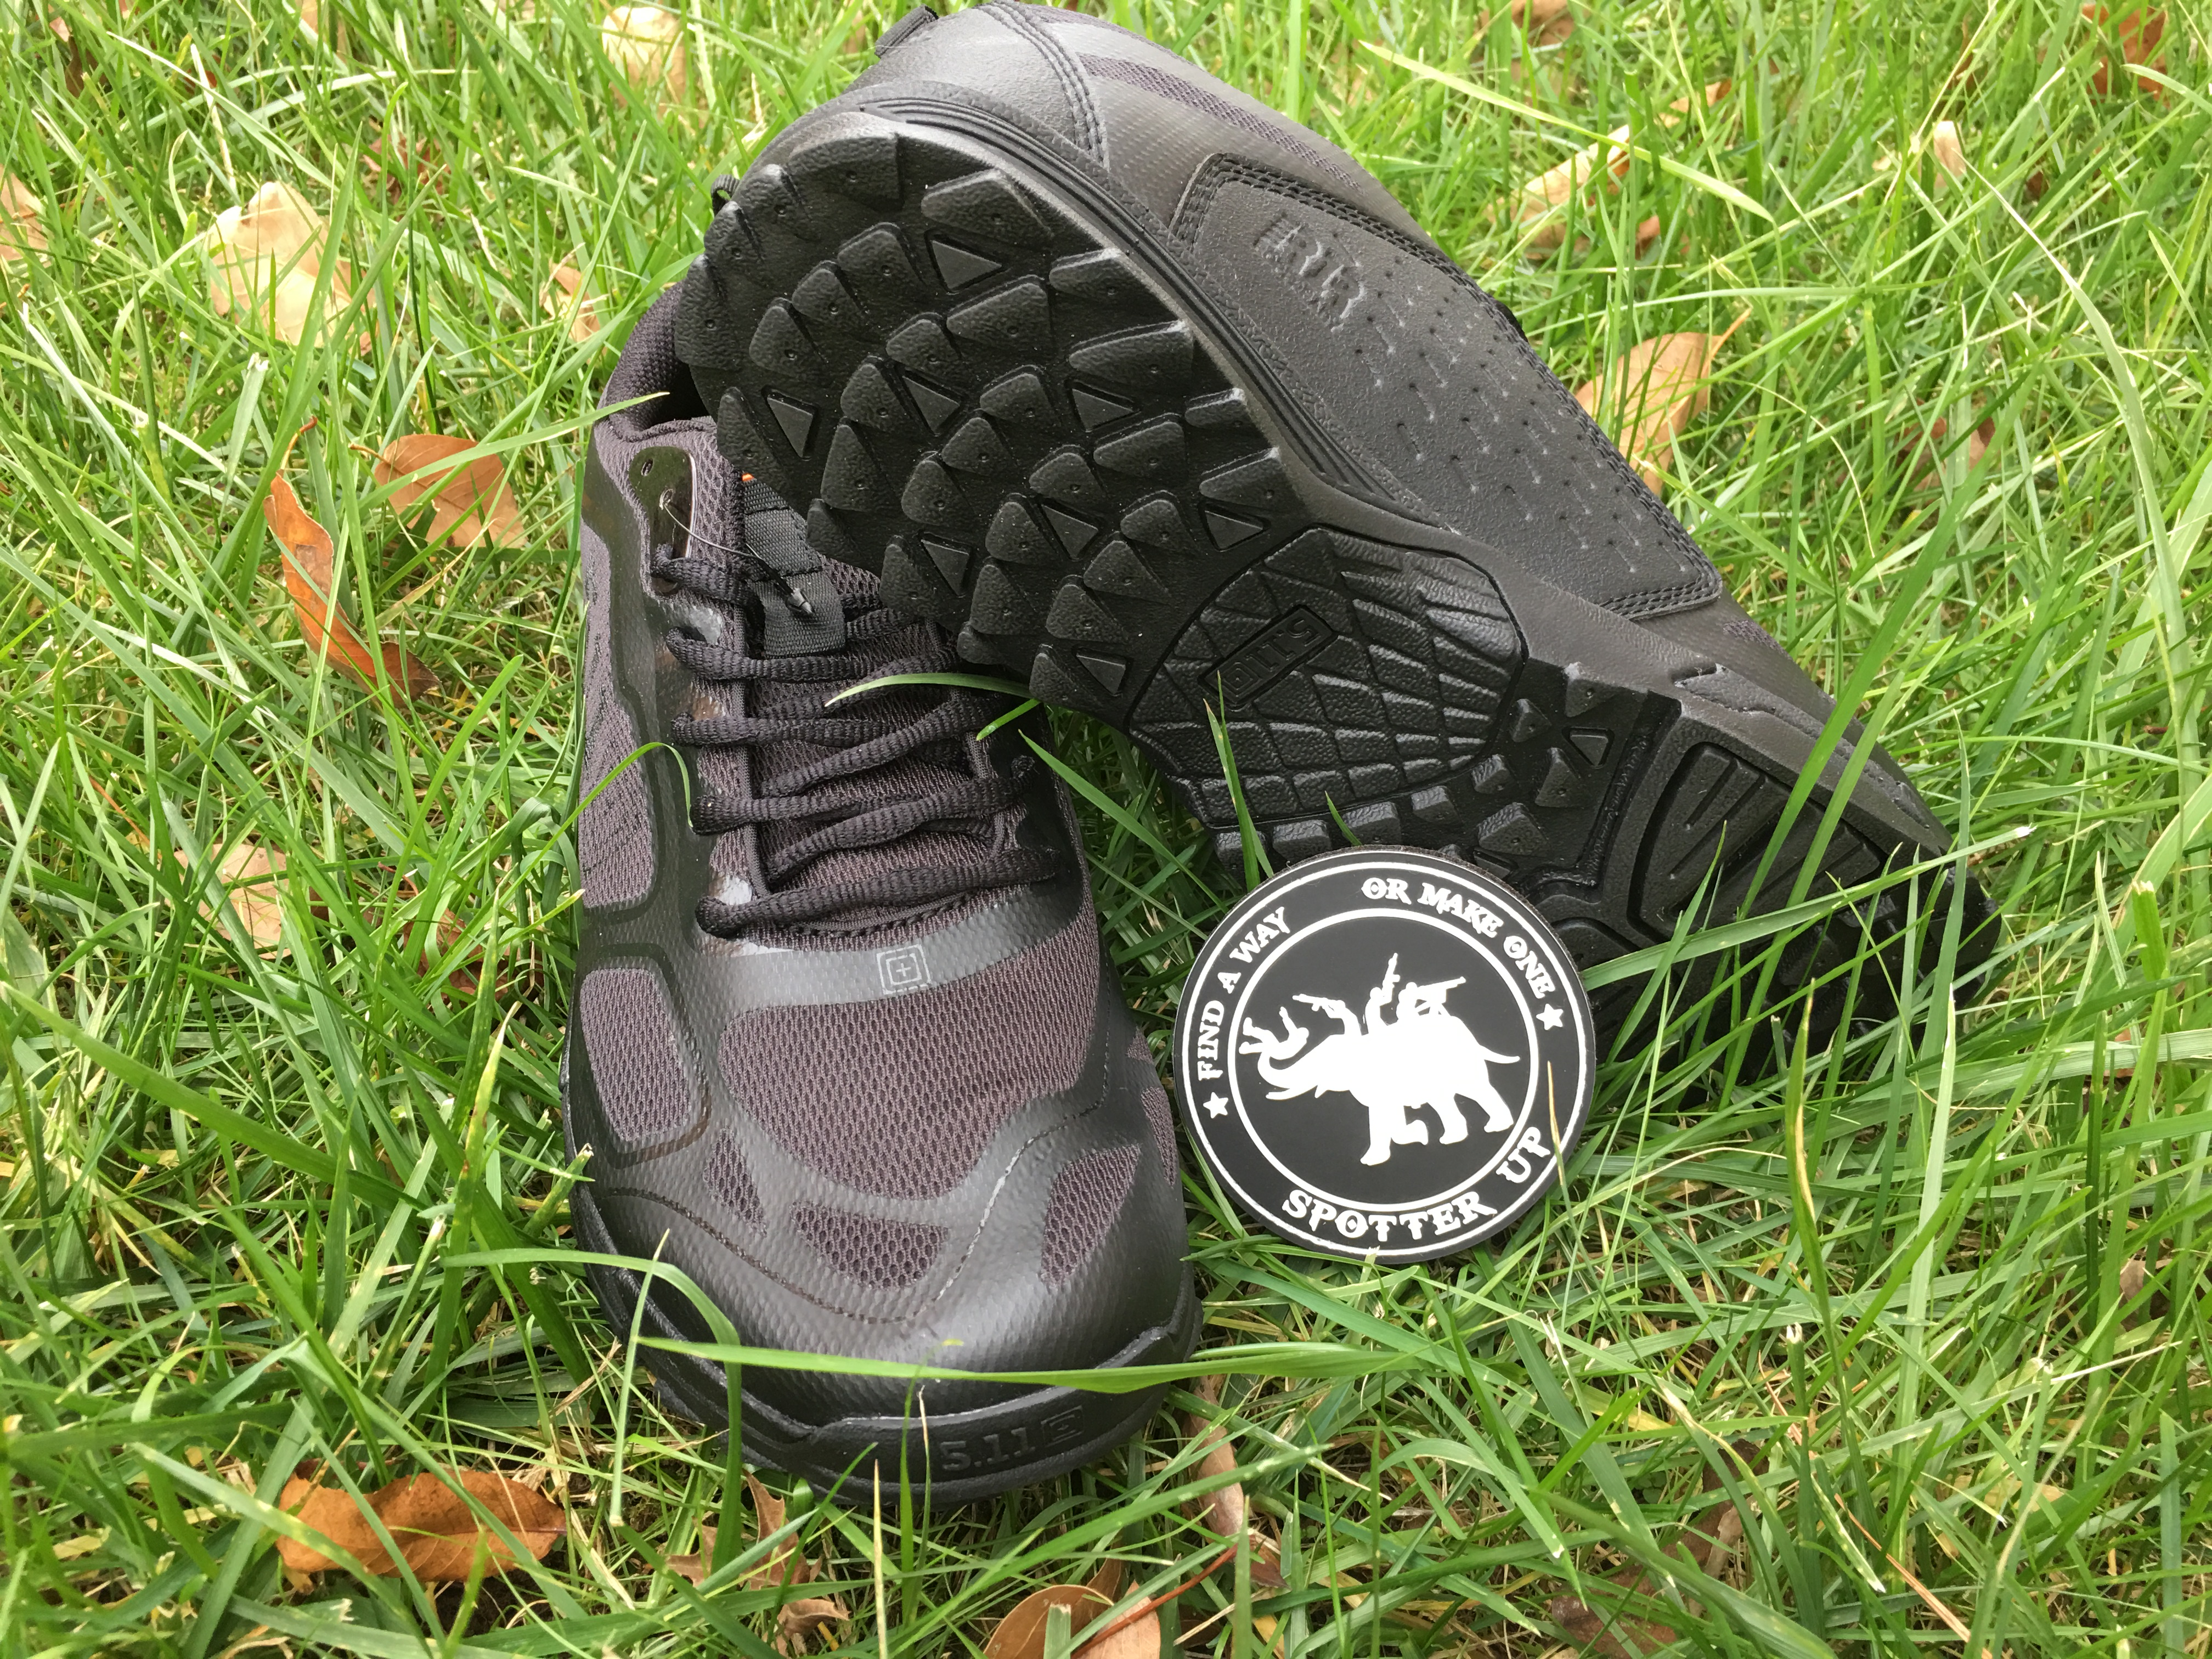 5.11 Tactical ABR Trainers are Good to